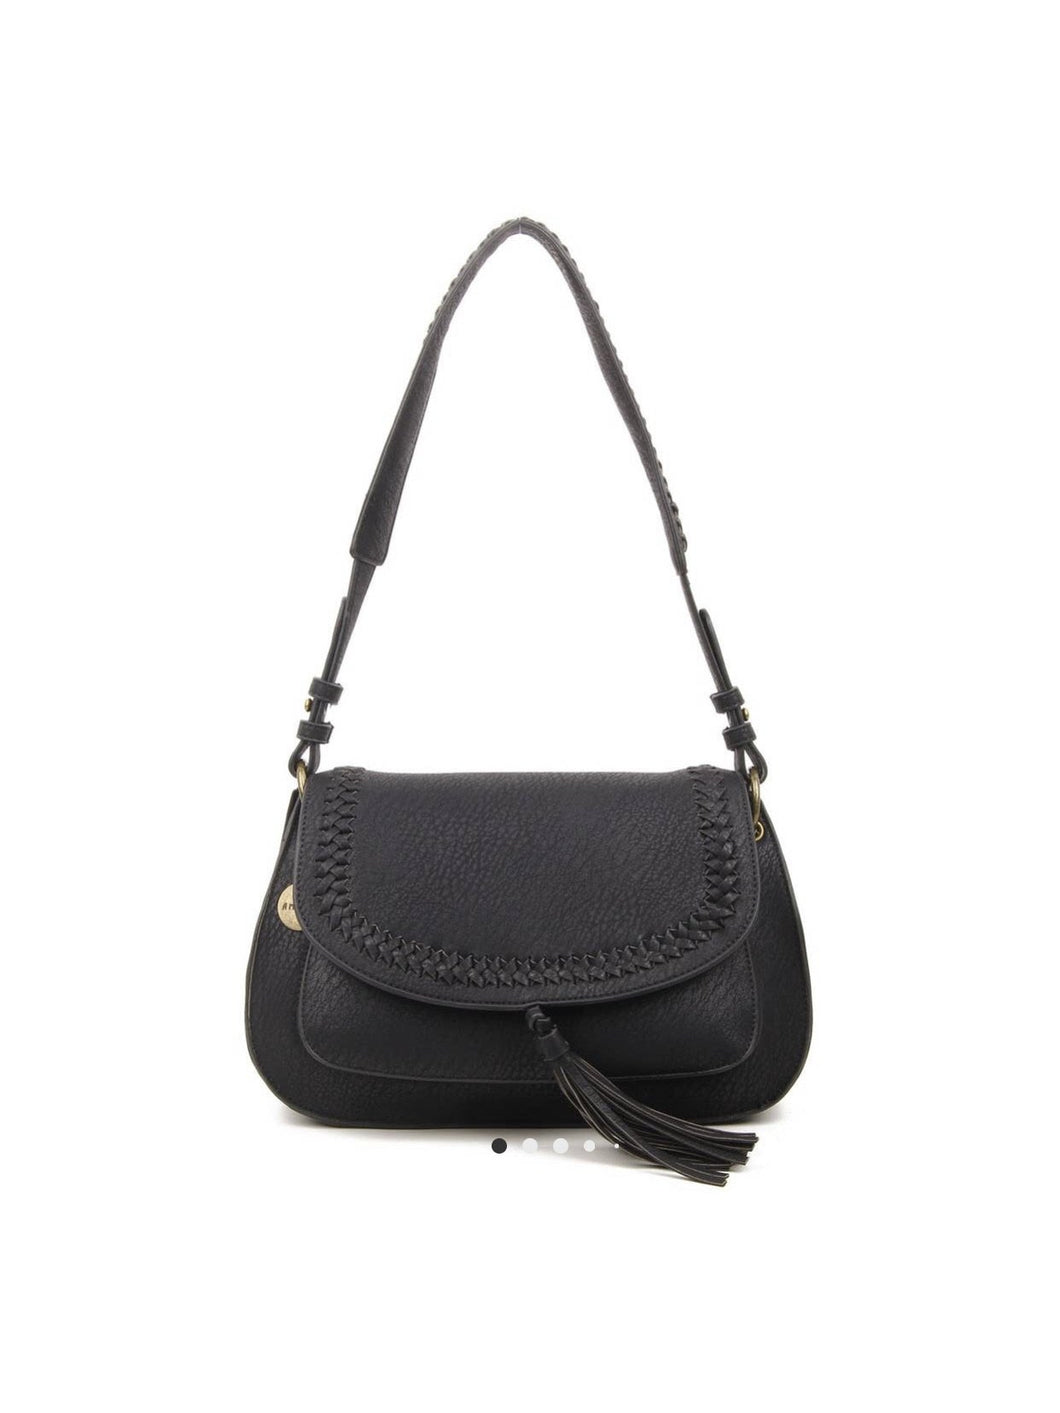 THE ALICE SADDLE BAG